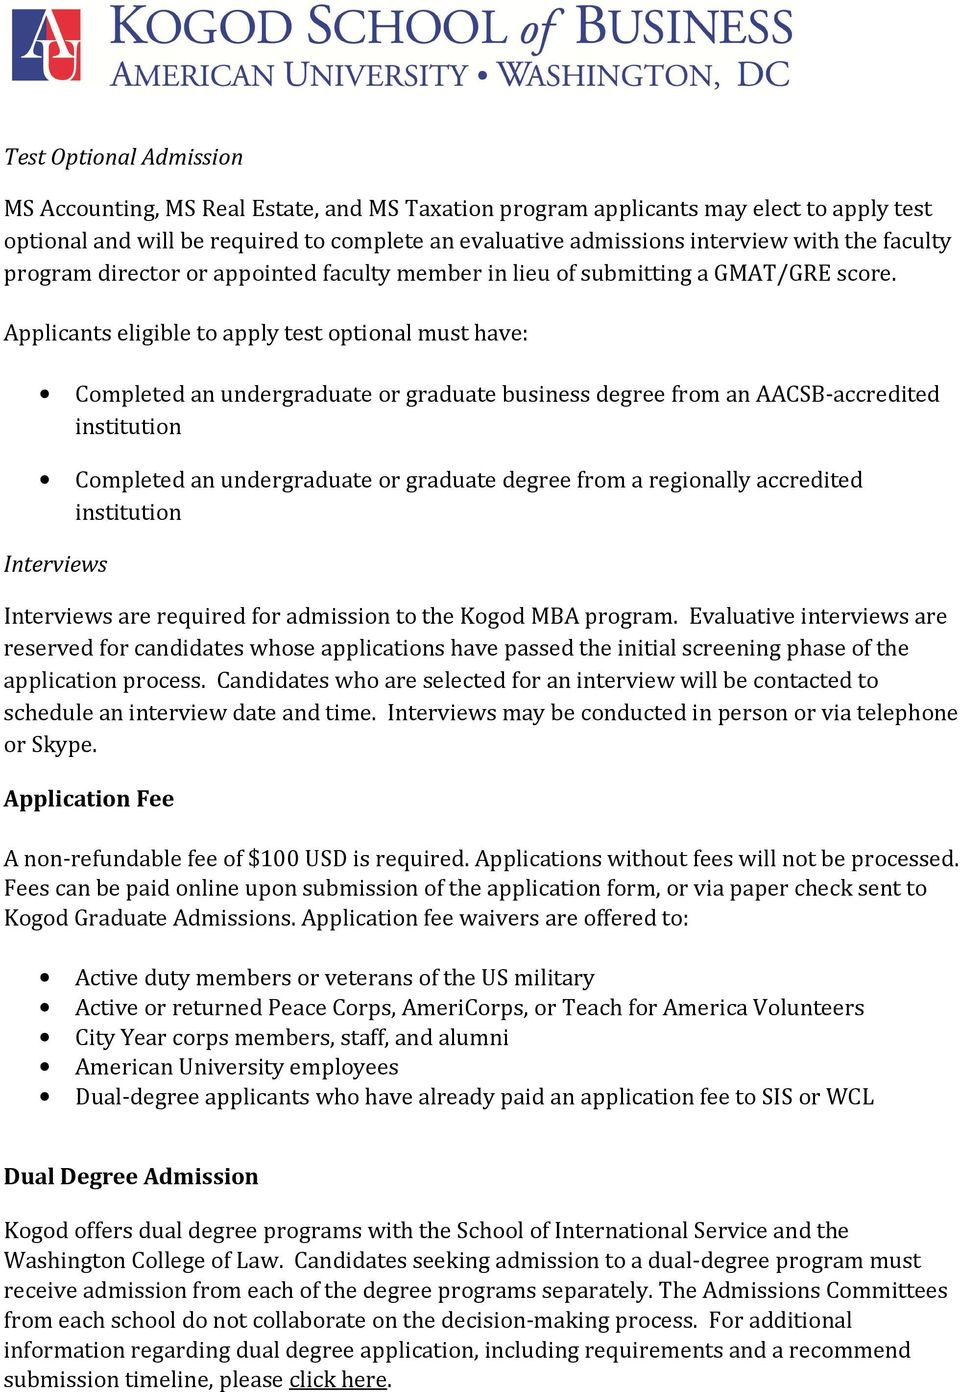 Applicants eligible to apply test optional must have: Completed an undergraduate or graduate business degree from an AACSB-accredited institution Completed an undergraduate or graduate degree from a